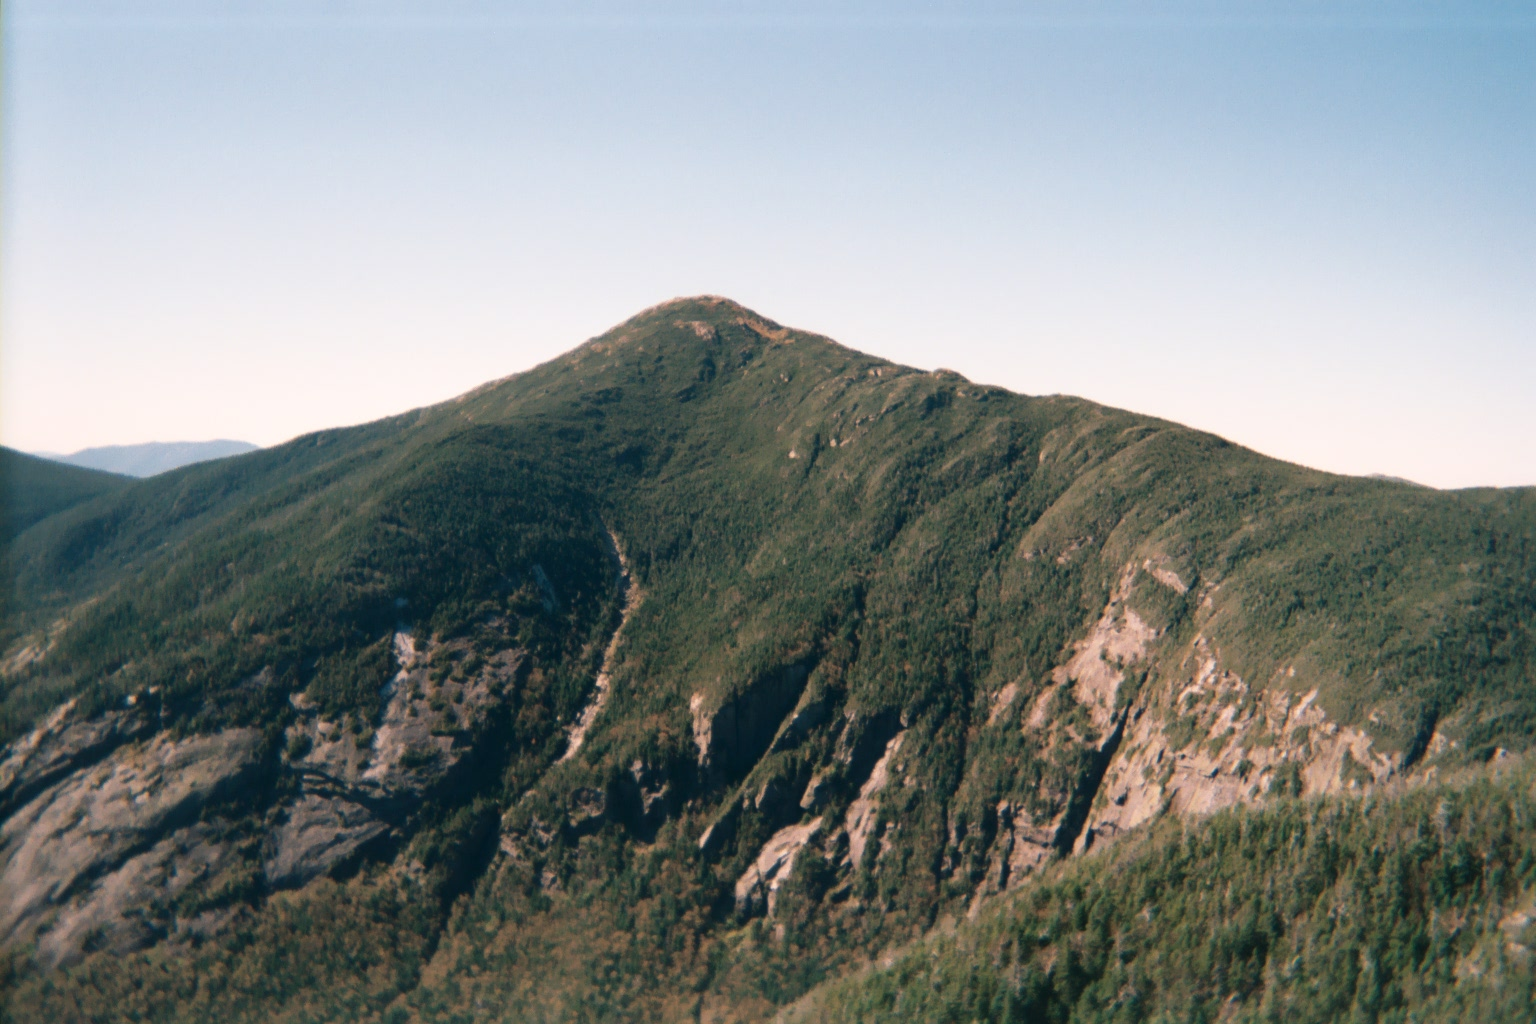 Image 9. Mount Marcy in the Adirondacks mountain range, New York State, USA. Photo taken from Mount Haystack, looking across Panther Gorge. Photo by Daniel Tripp.